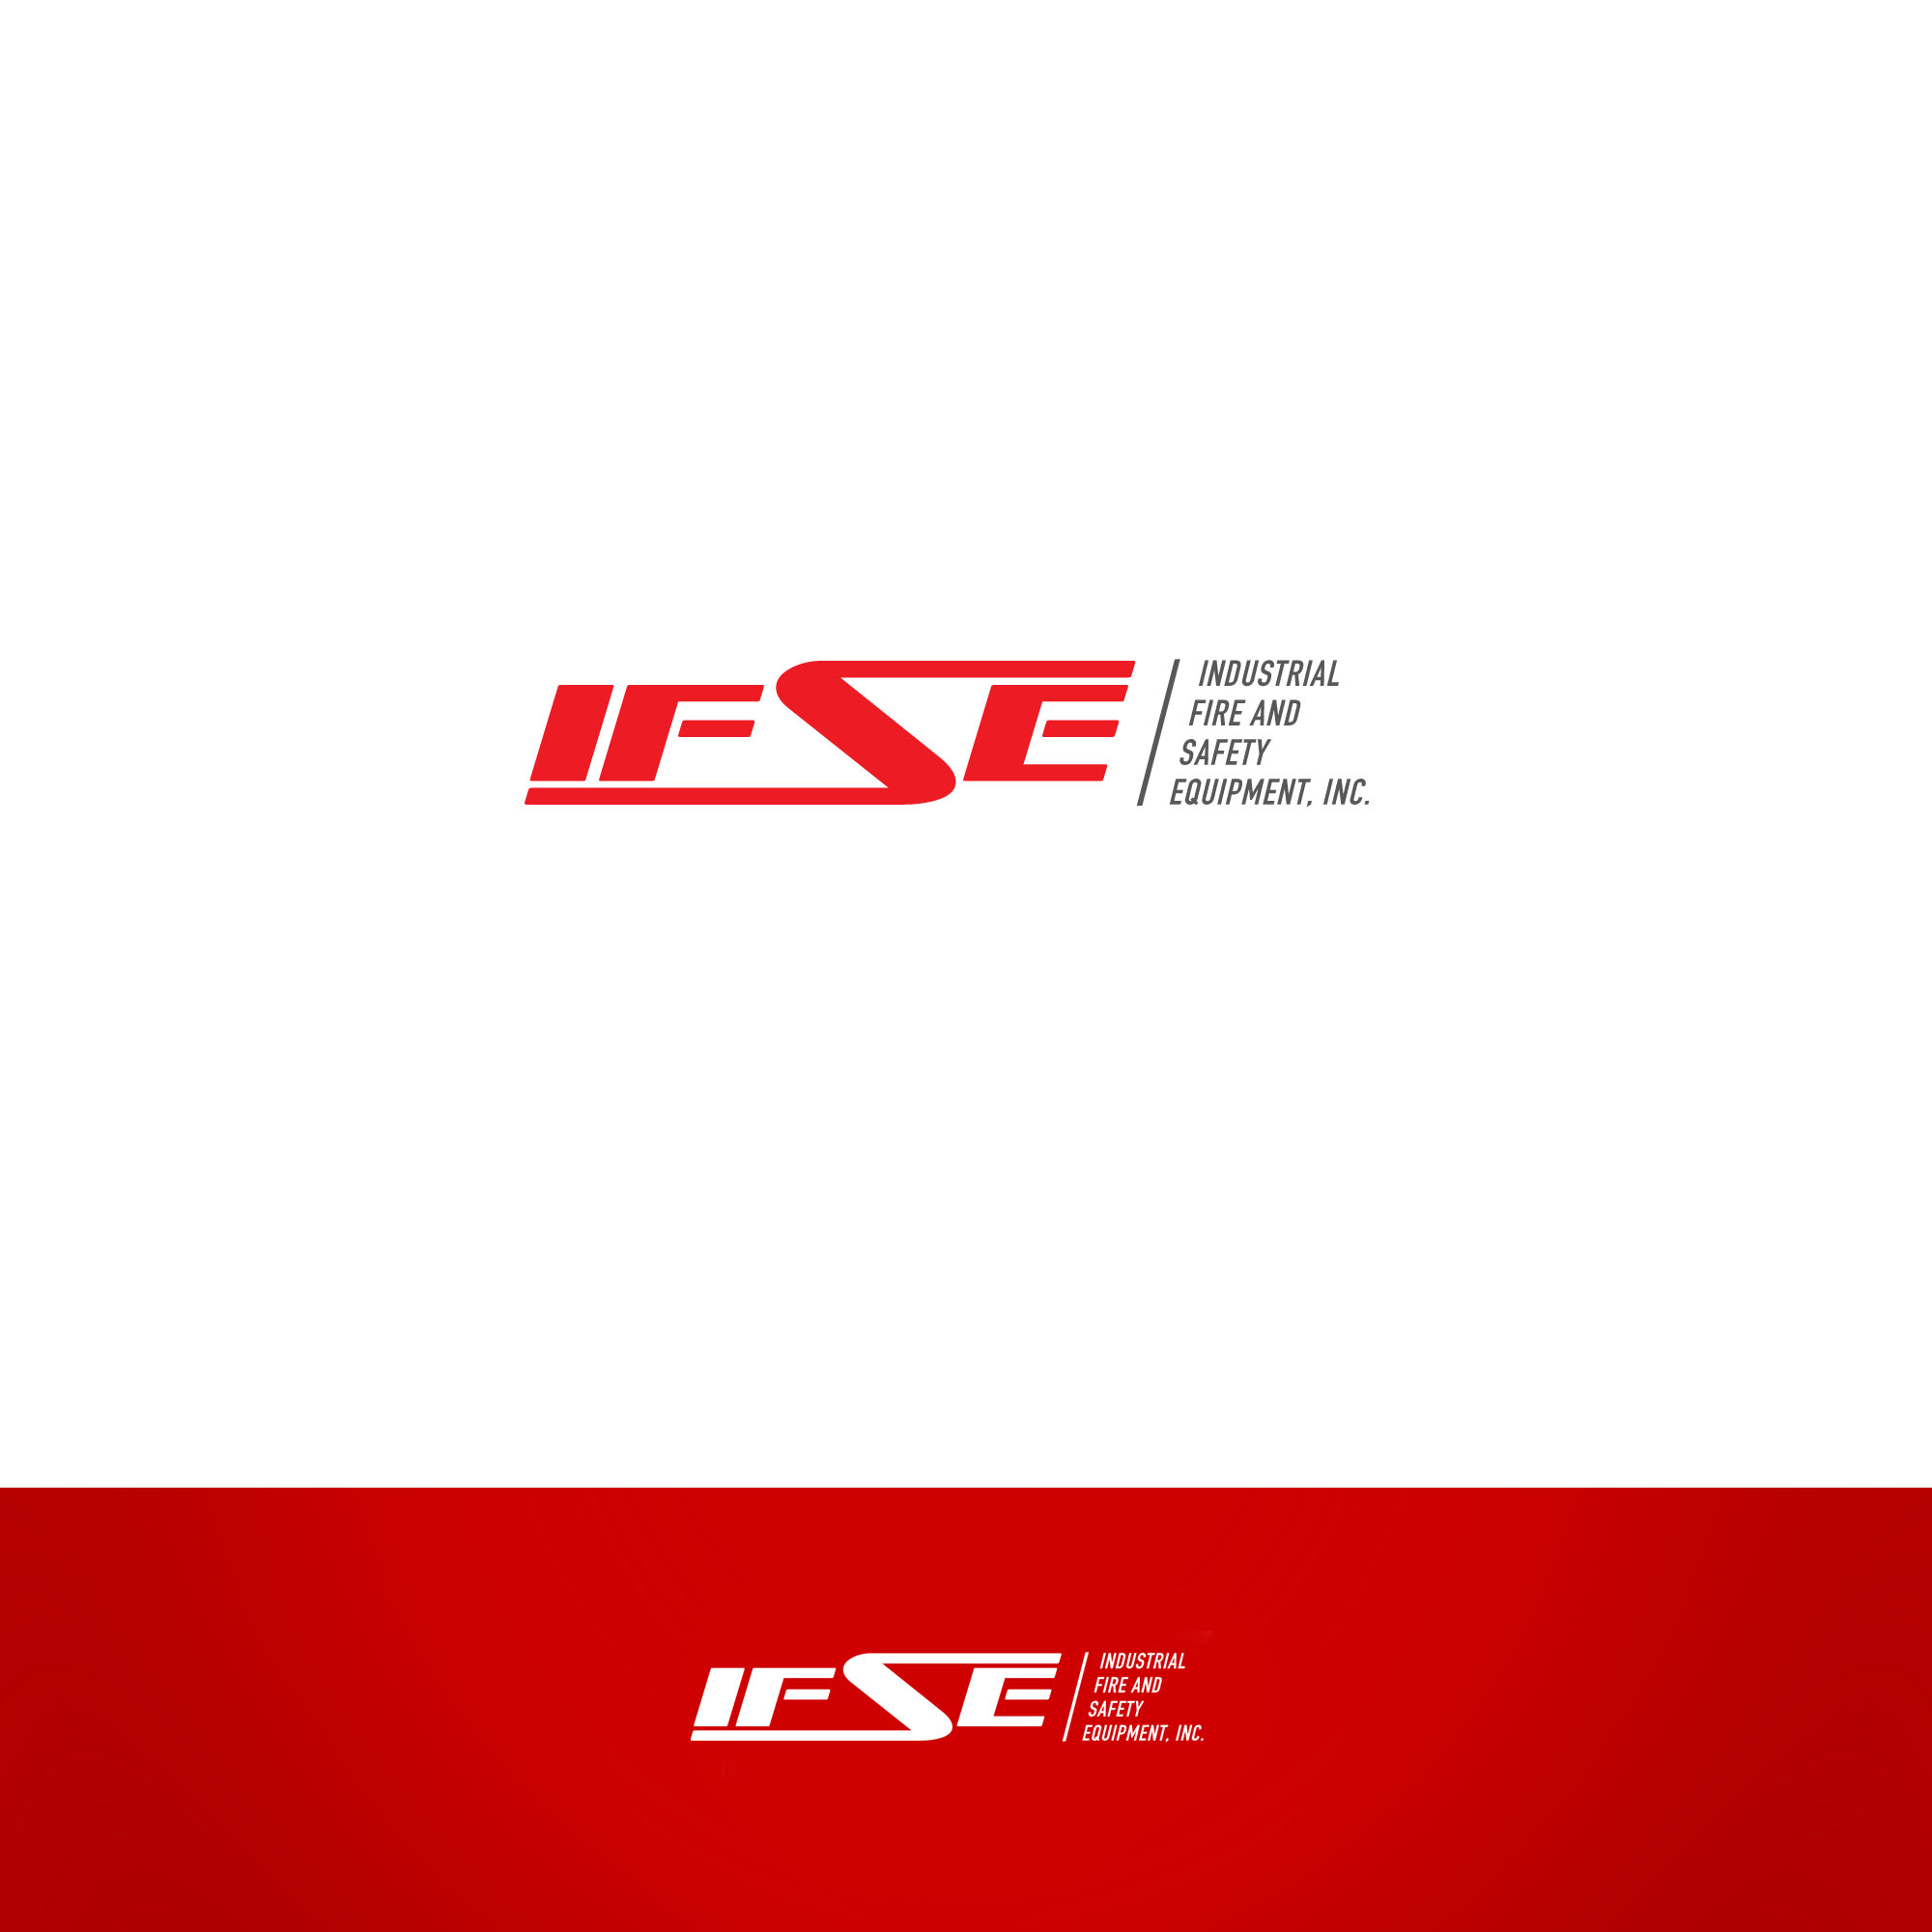 Logo Design by tanganpanas - Entry No. 279 in the Logo Design Contest New Logo Design for Industrial Fire and Safety Equipment, Inc..